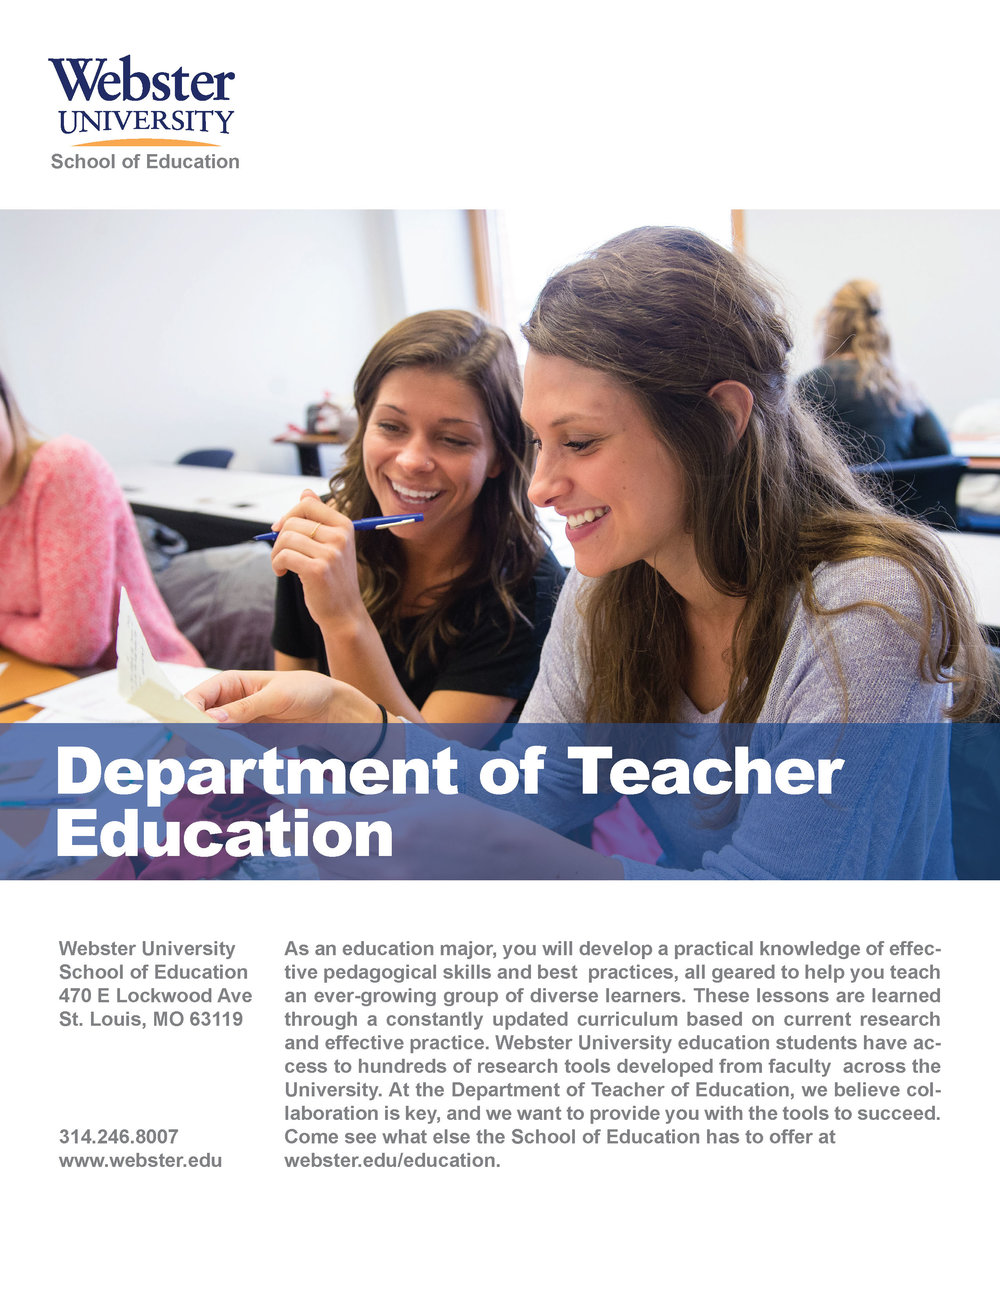 Department of Teacher Education Intro Flyer